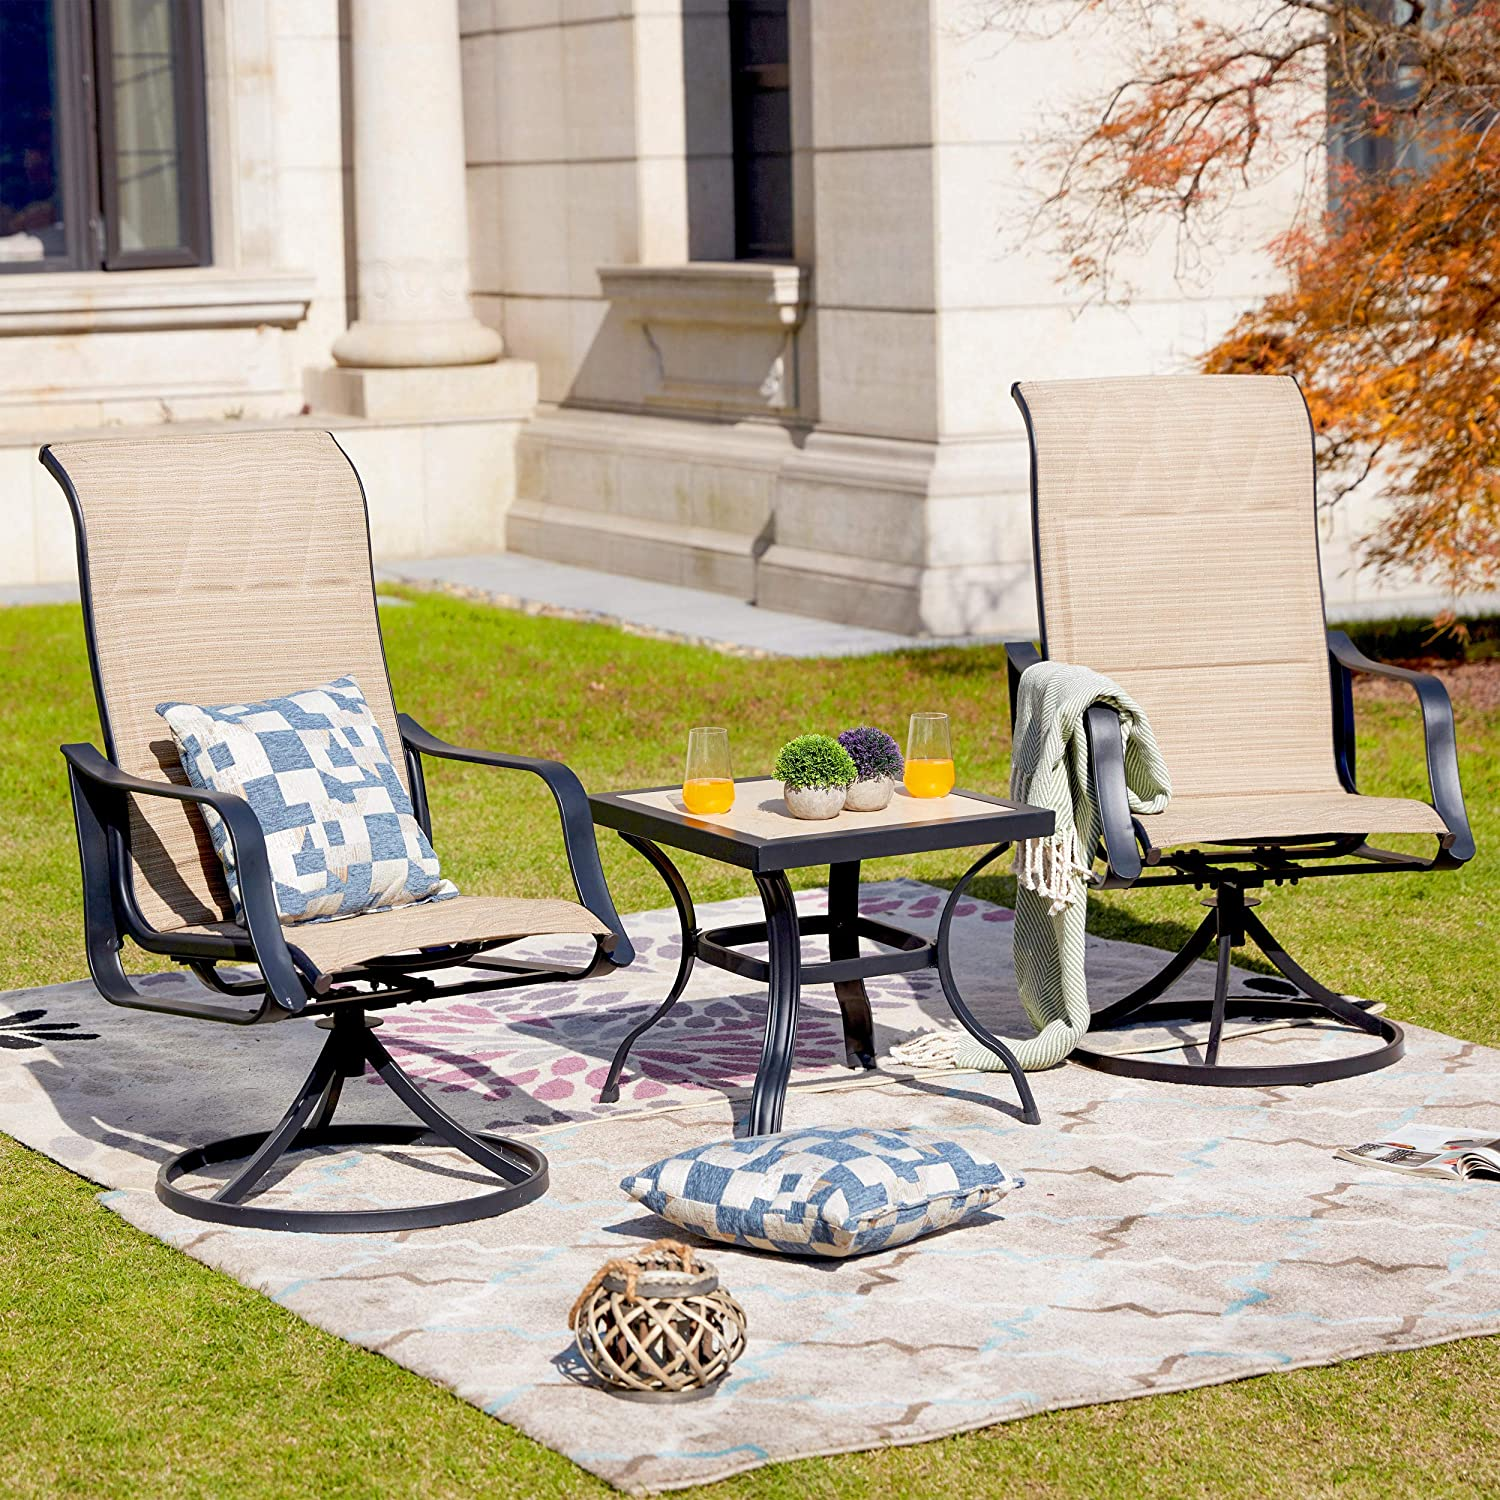 "LOKATSE HOME 3 Piece Patio Rocking Set with 2 Outdoor Swivel Chairs and 21"" Square Dining Table, Grey : Garden & Outdoor"